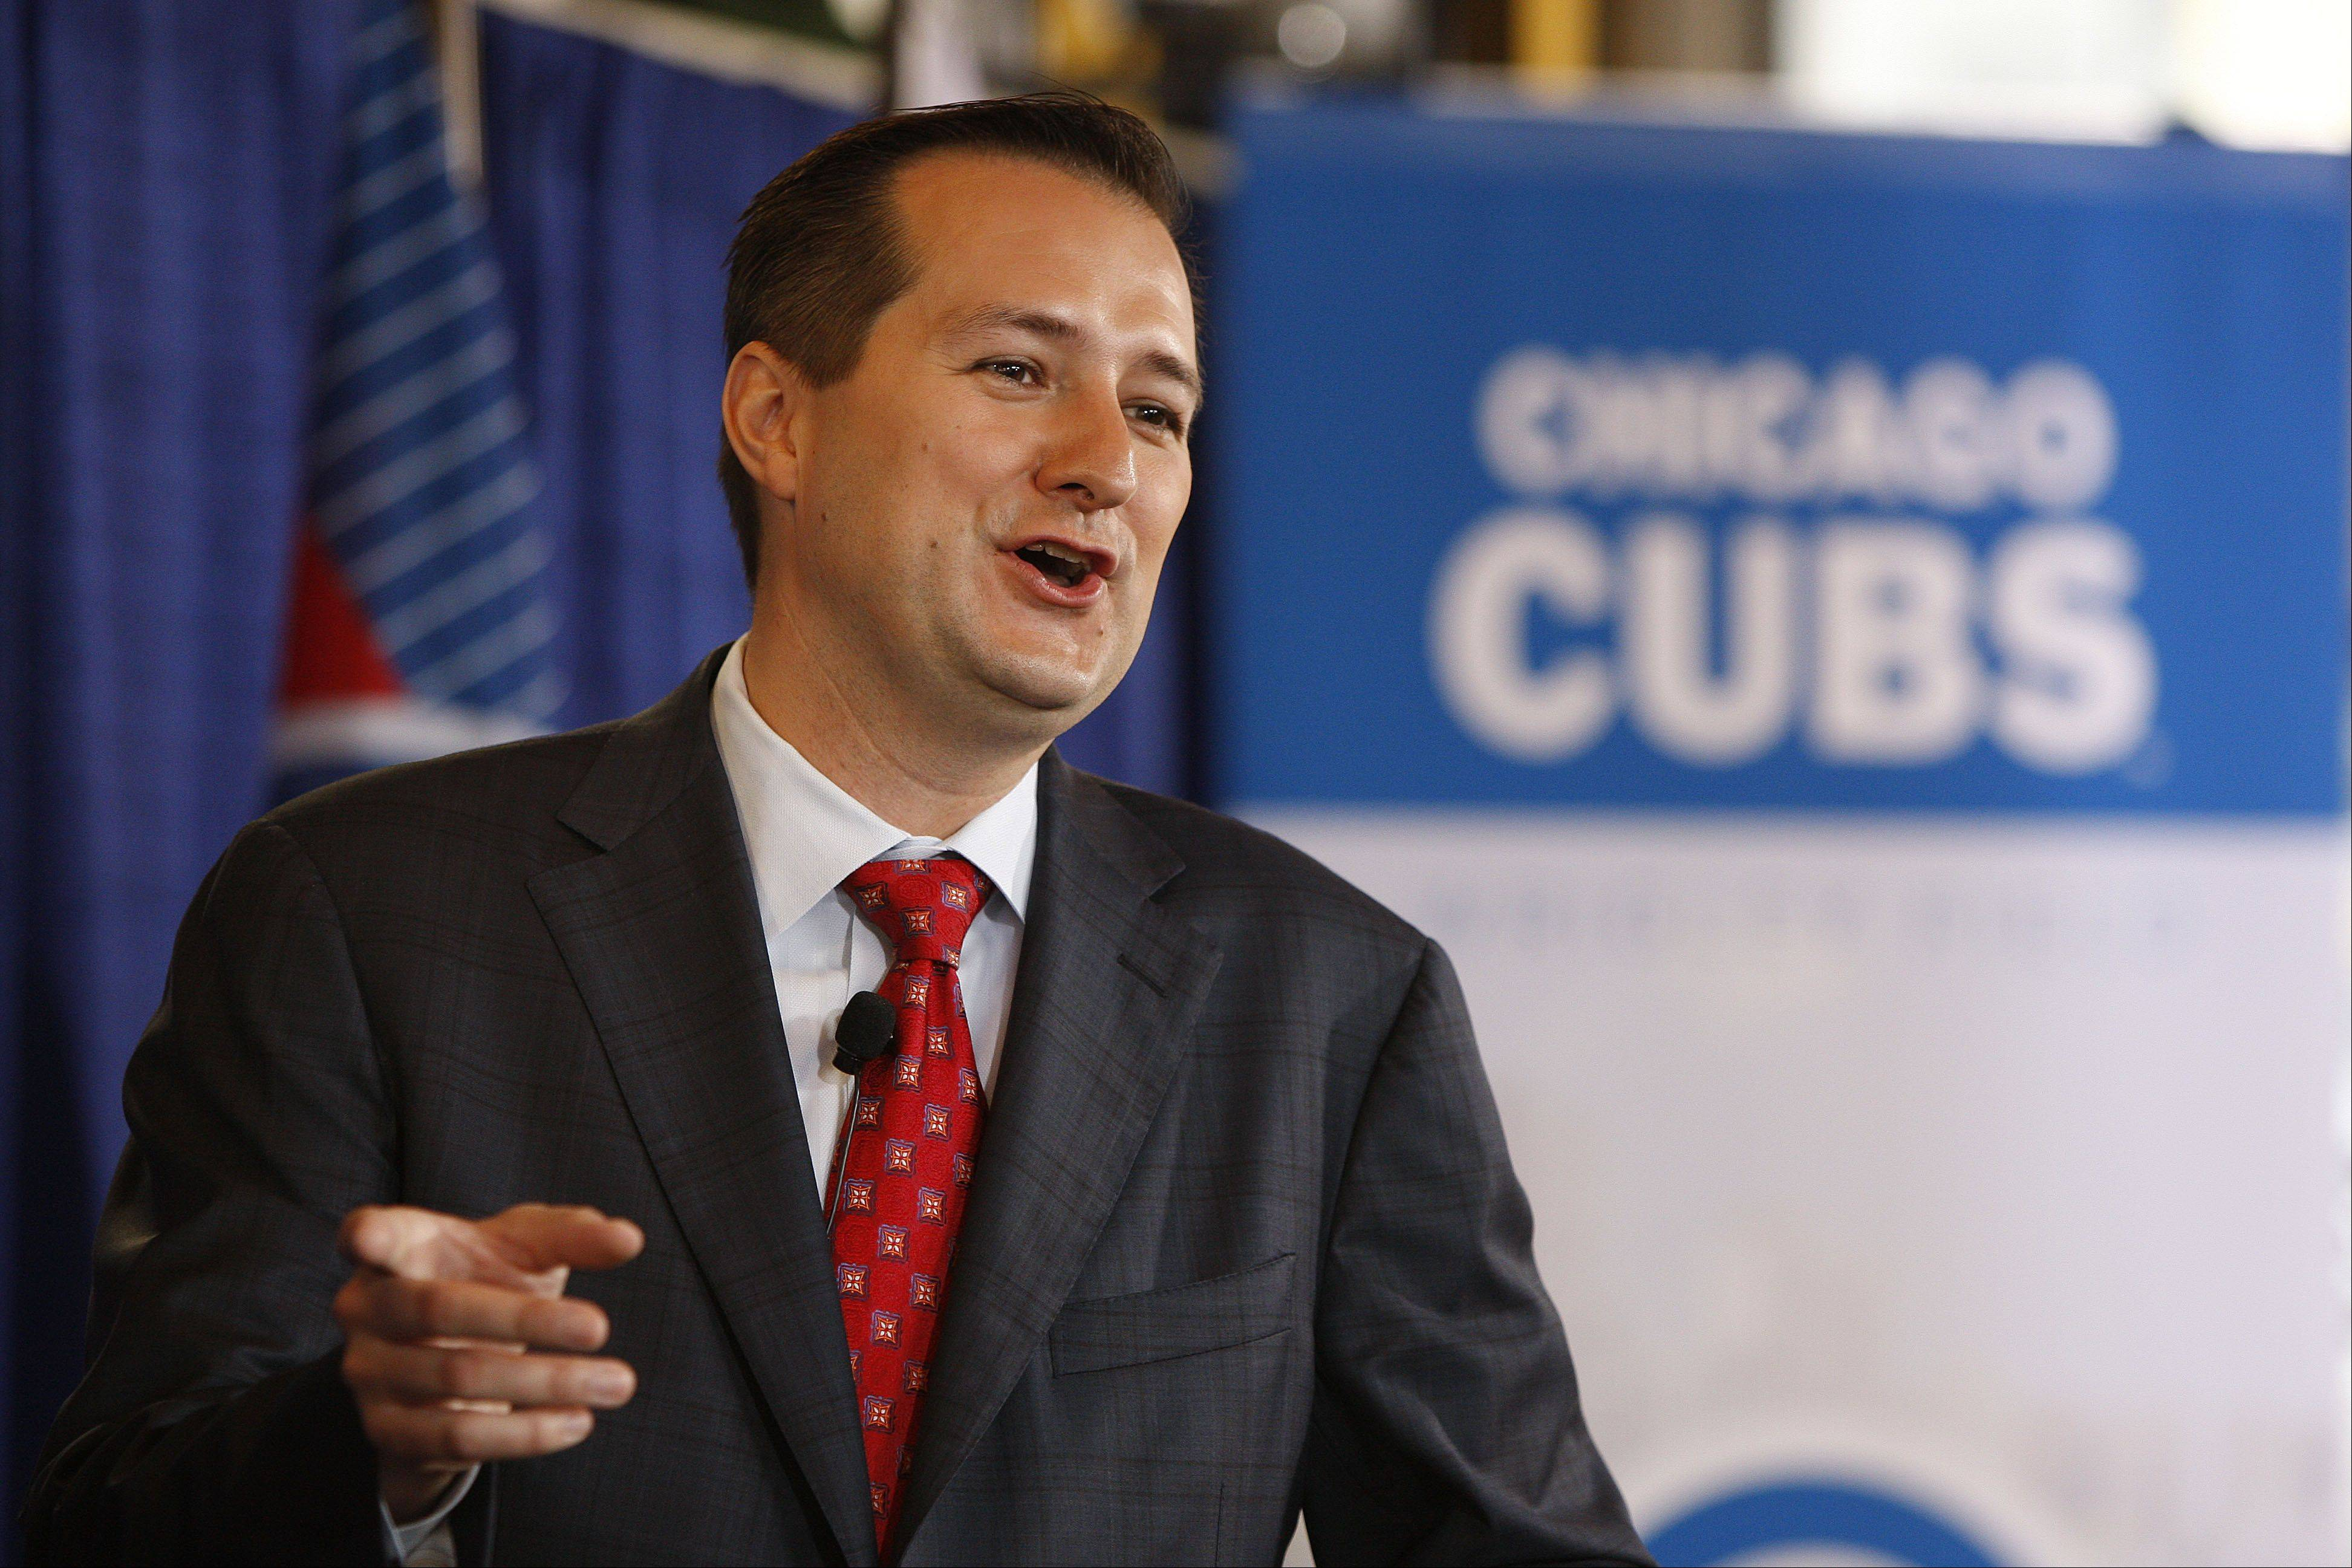 Tom Ricketts talks about his family's new ownership of the Chicago Cubs baseball club during a news conference at Wrigley Field, on Friday, Oct. 30, 2009, in Chicago.